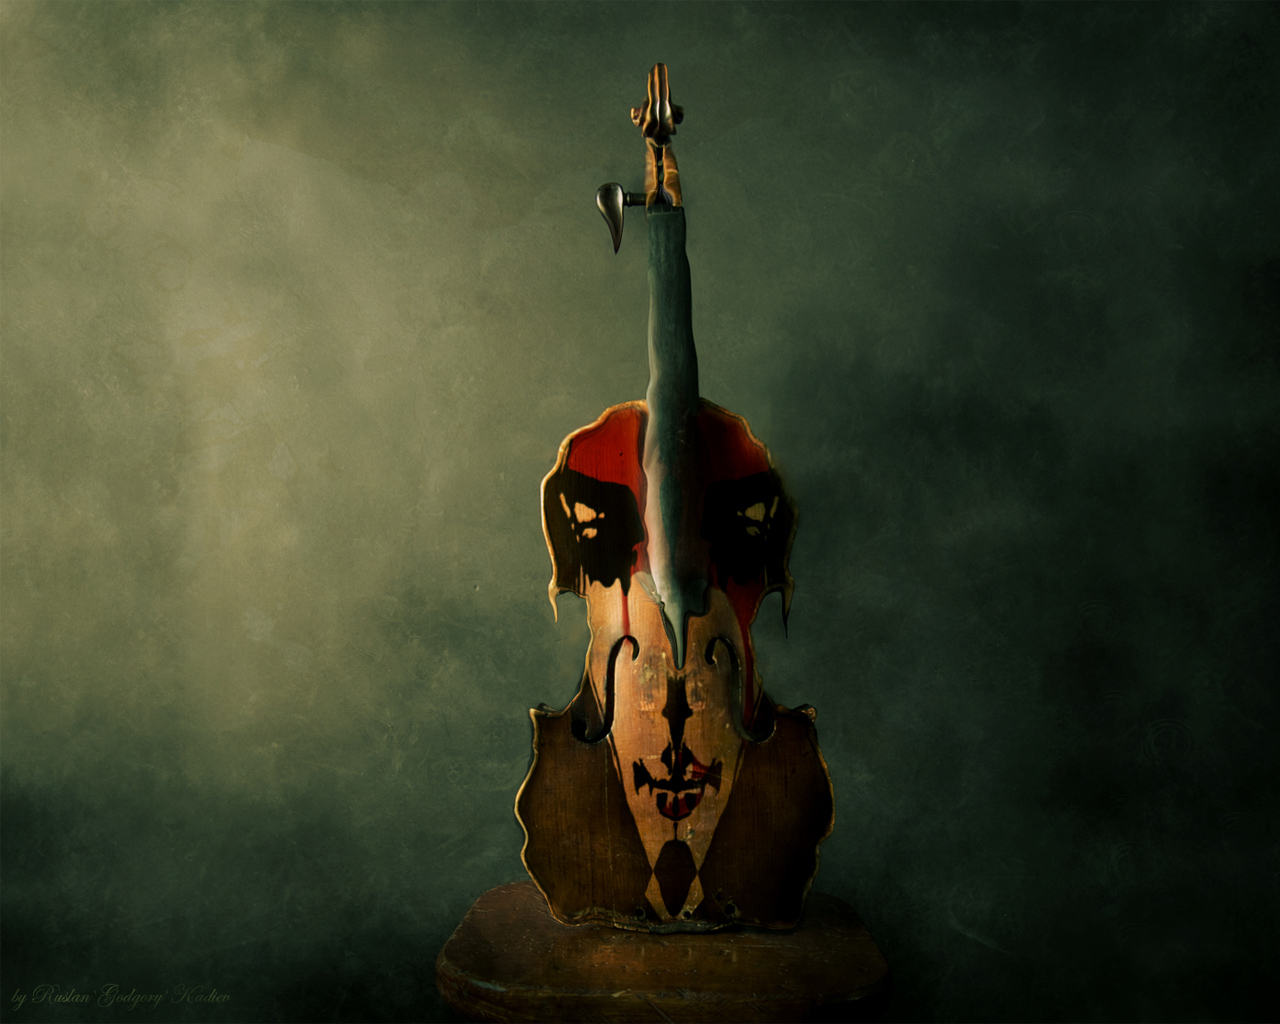 Violin Wallpaperfree Download Violin Wallpaperviolin Wallpaper For